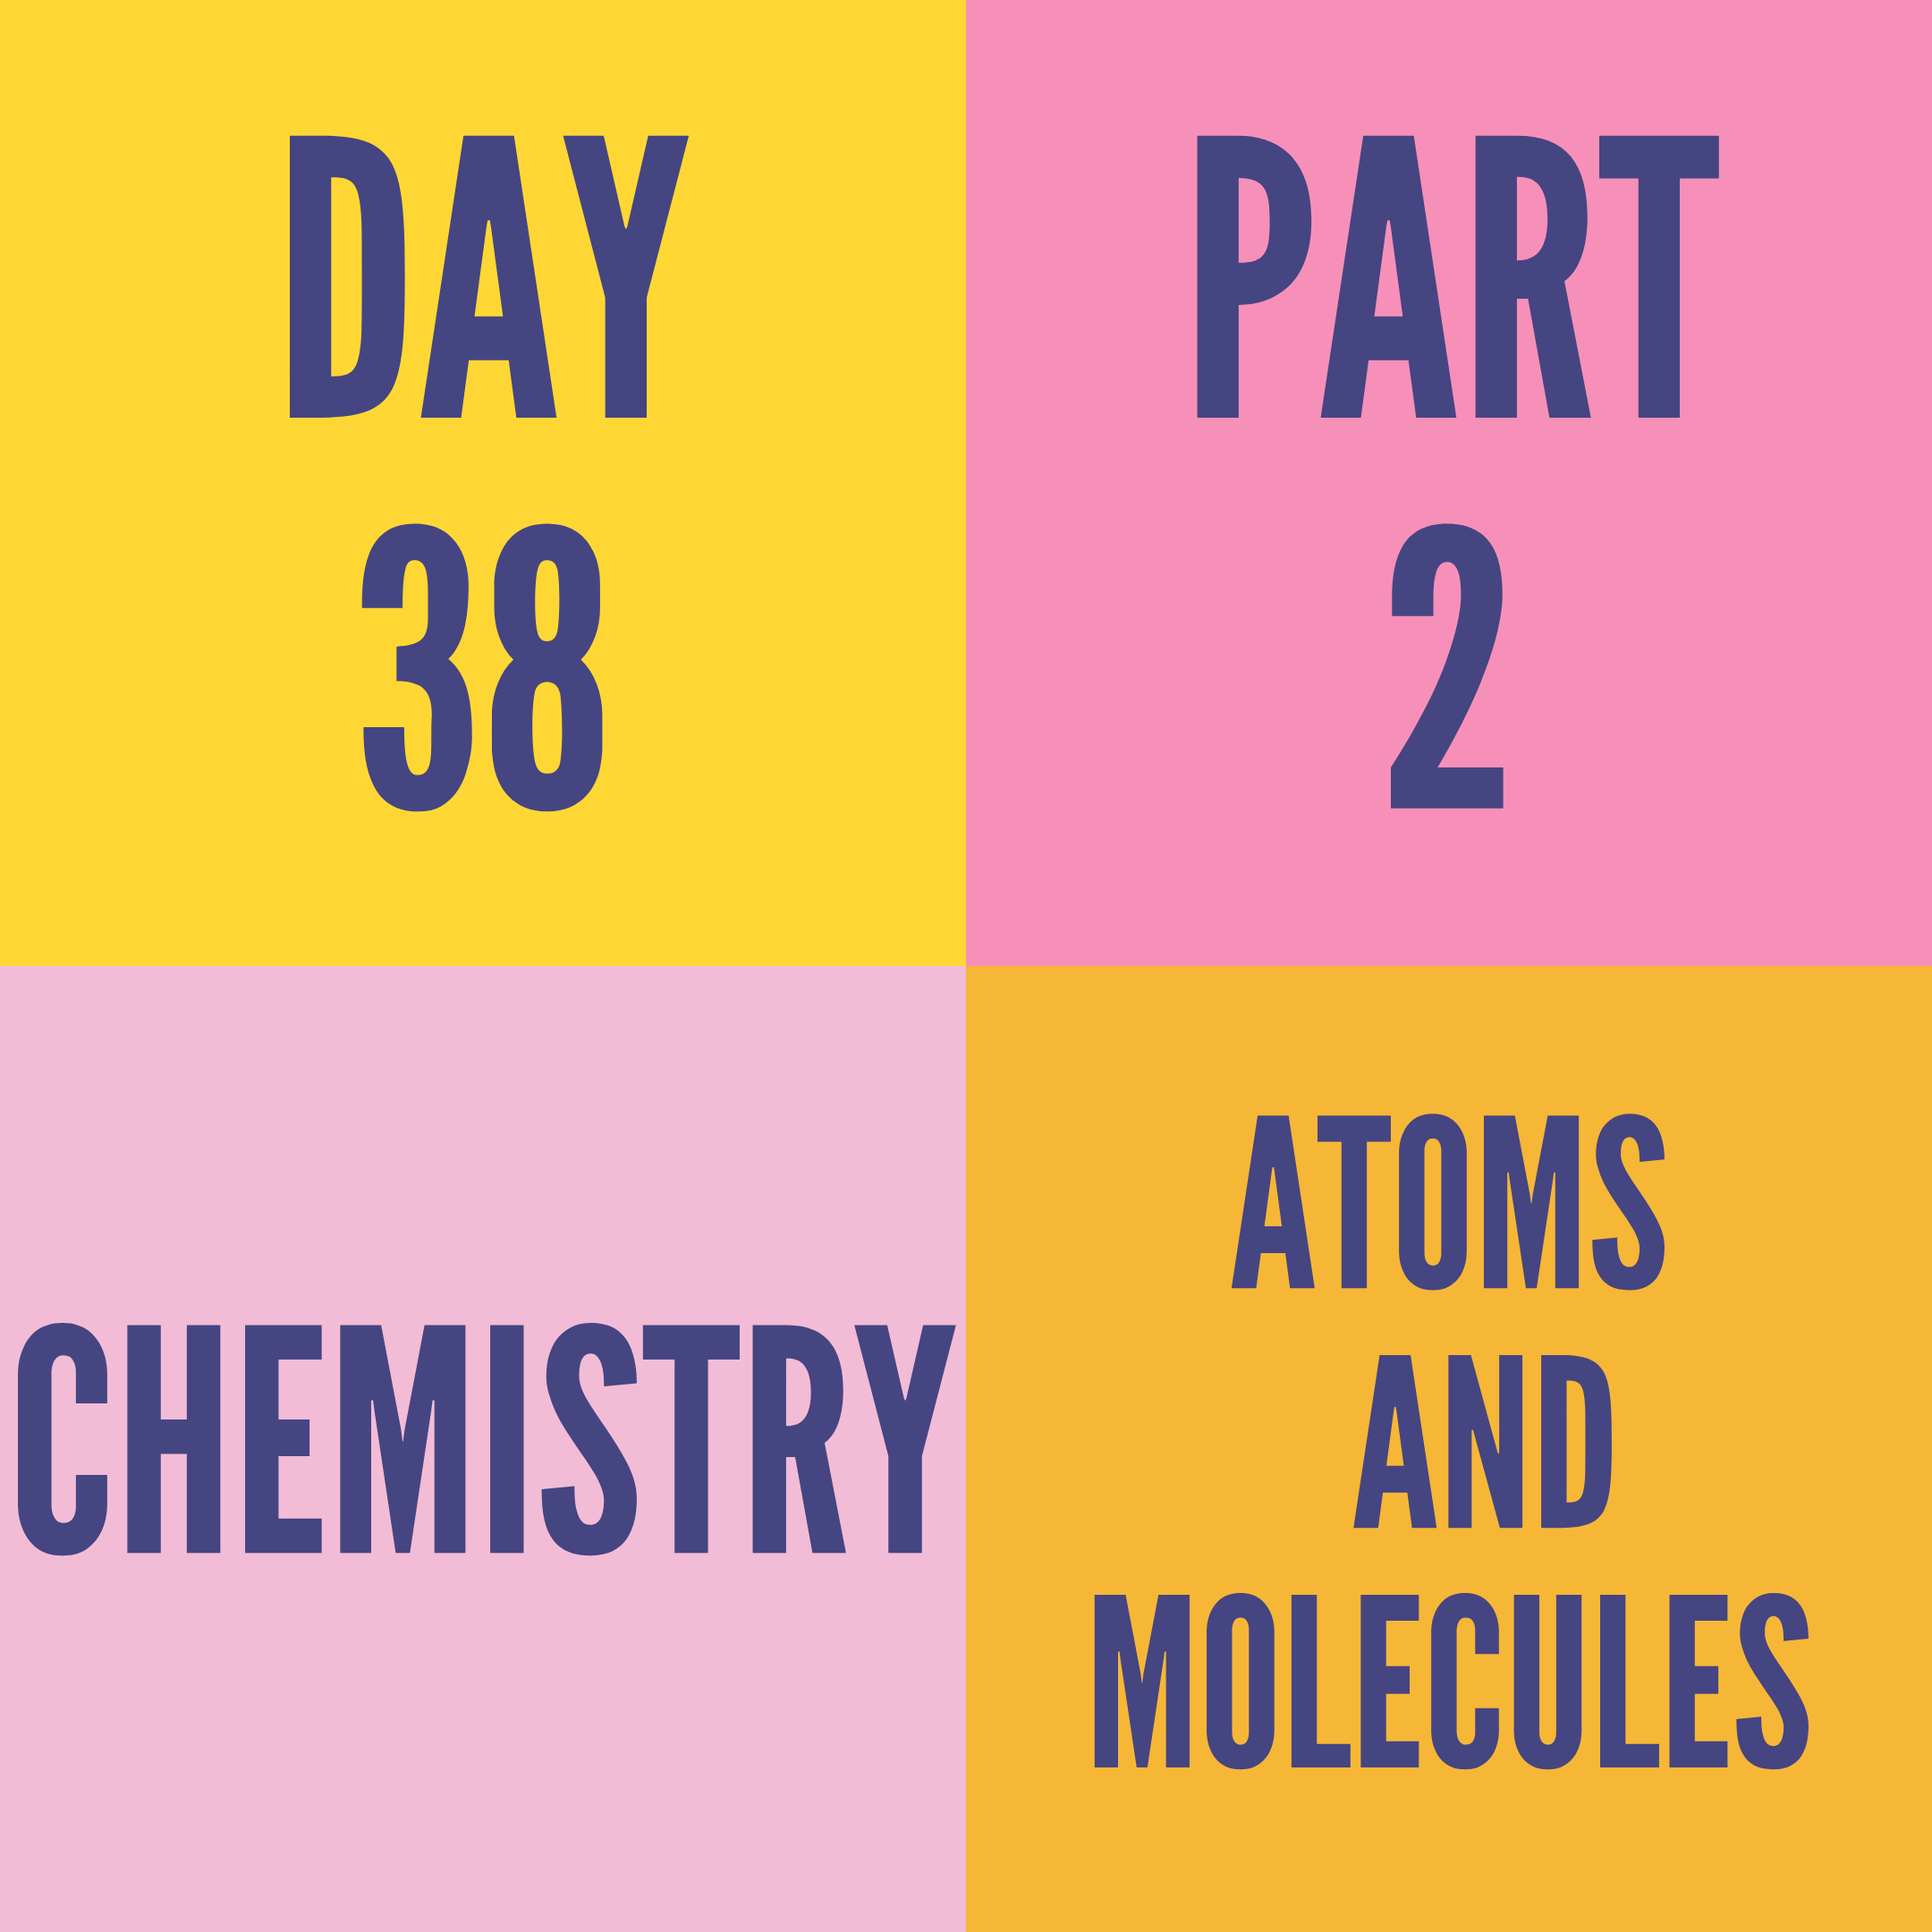 DAY-38 PART-2 ATOMS AND MOLECULES